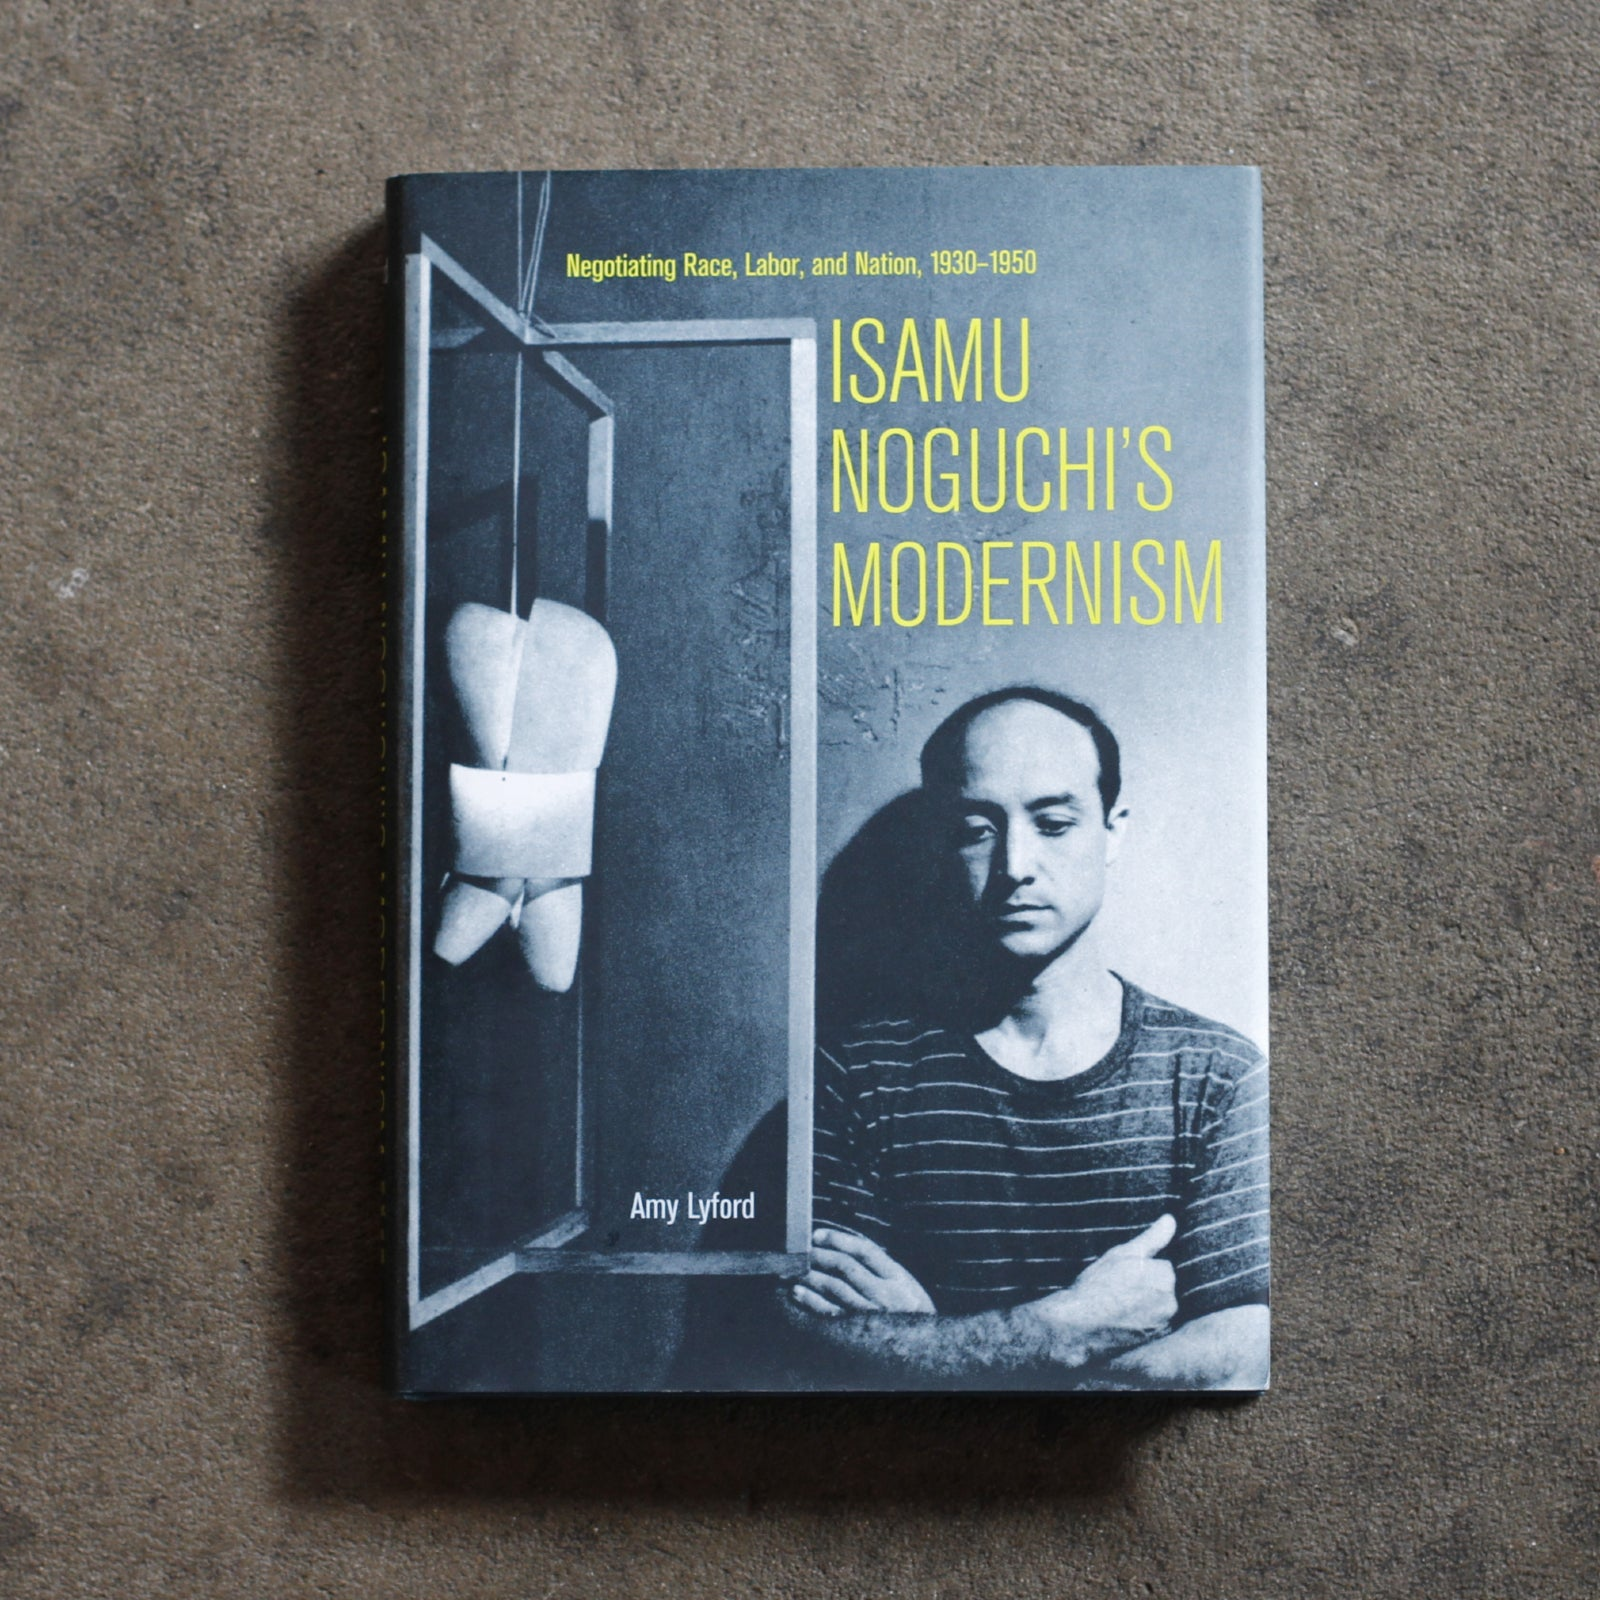 Isamu Noguchi's Modernism: Negotiating Race, Labor, and Nation, 1930–1950